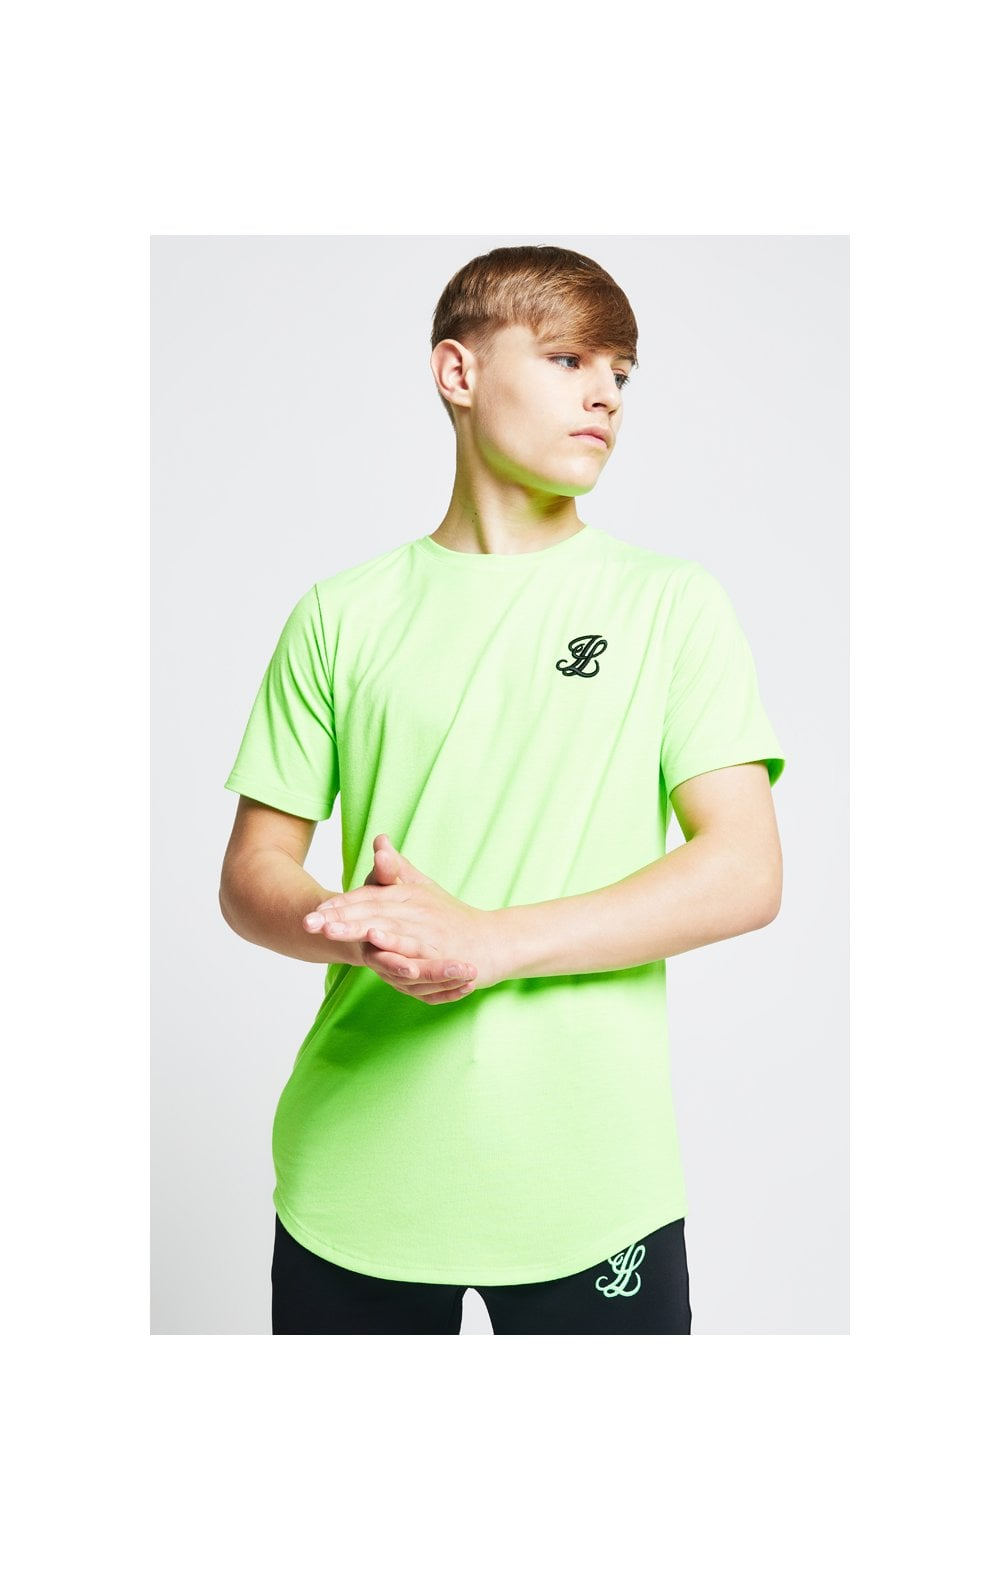 Illusive London S/S Taped Tee – Neon Green (3)